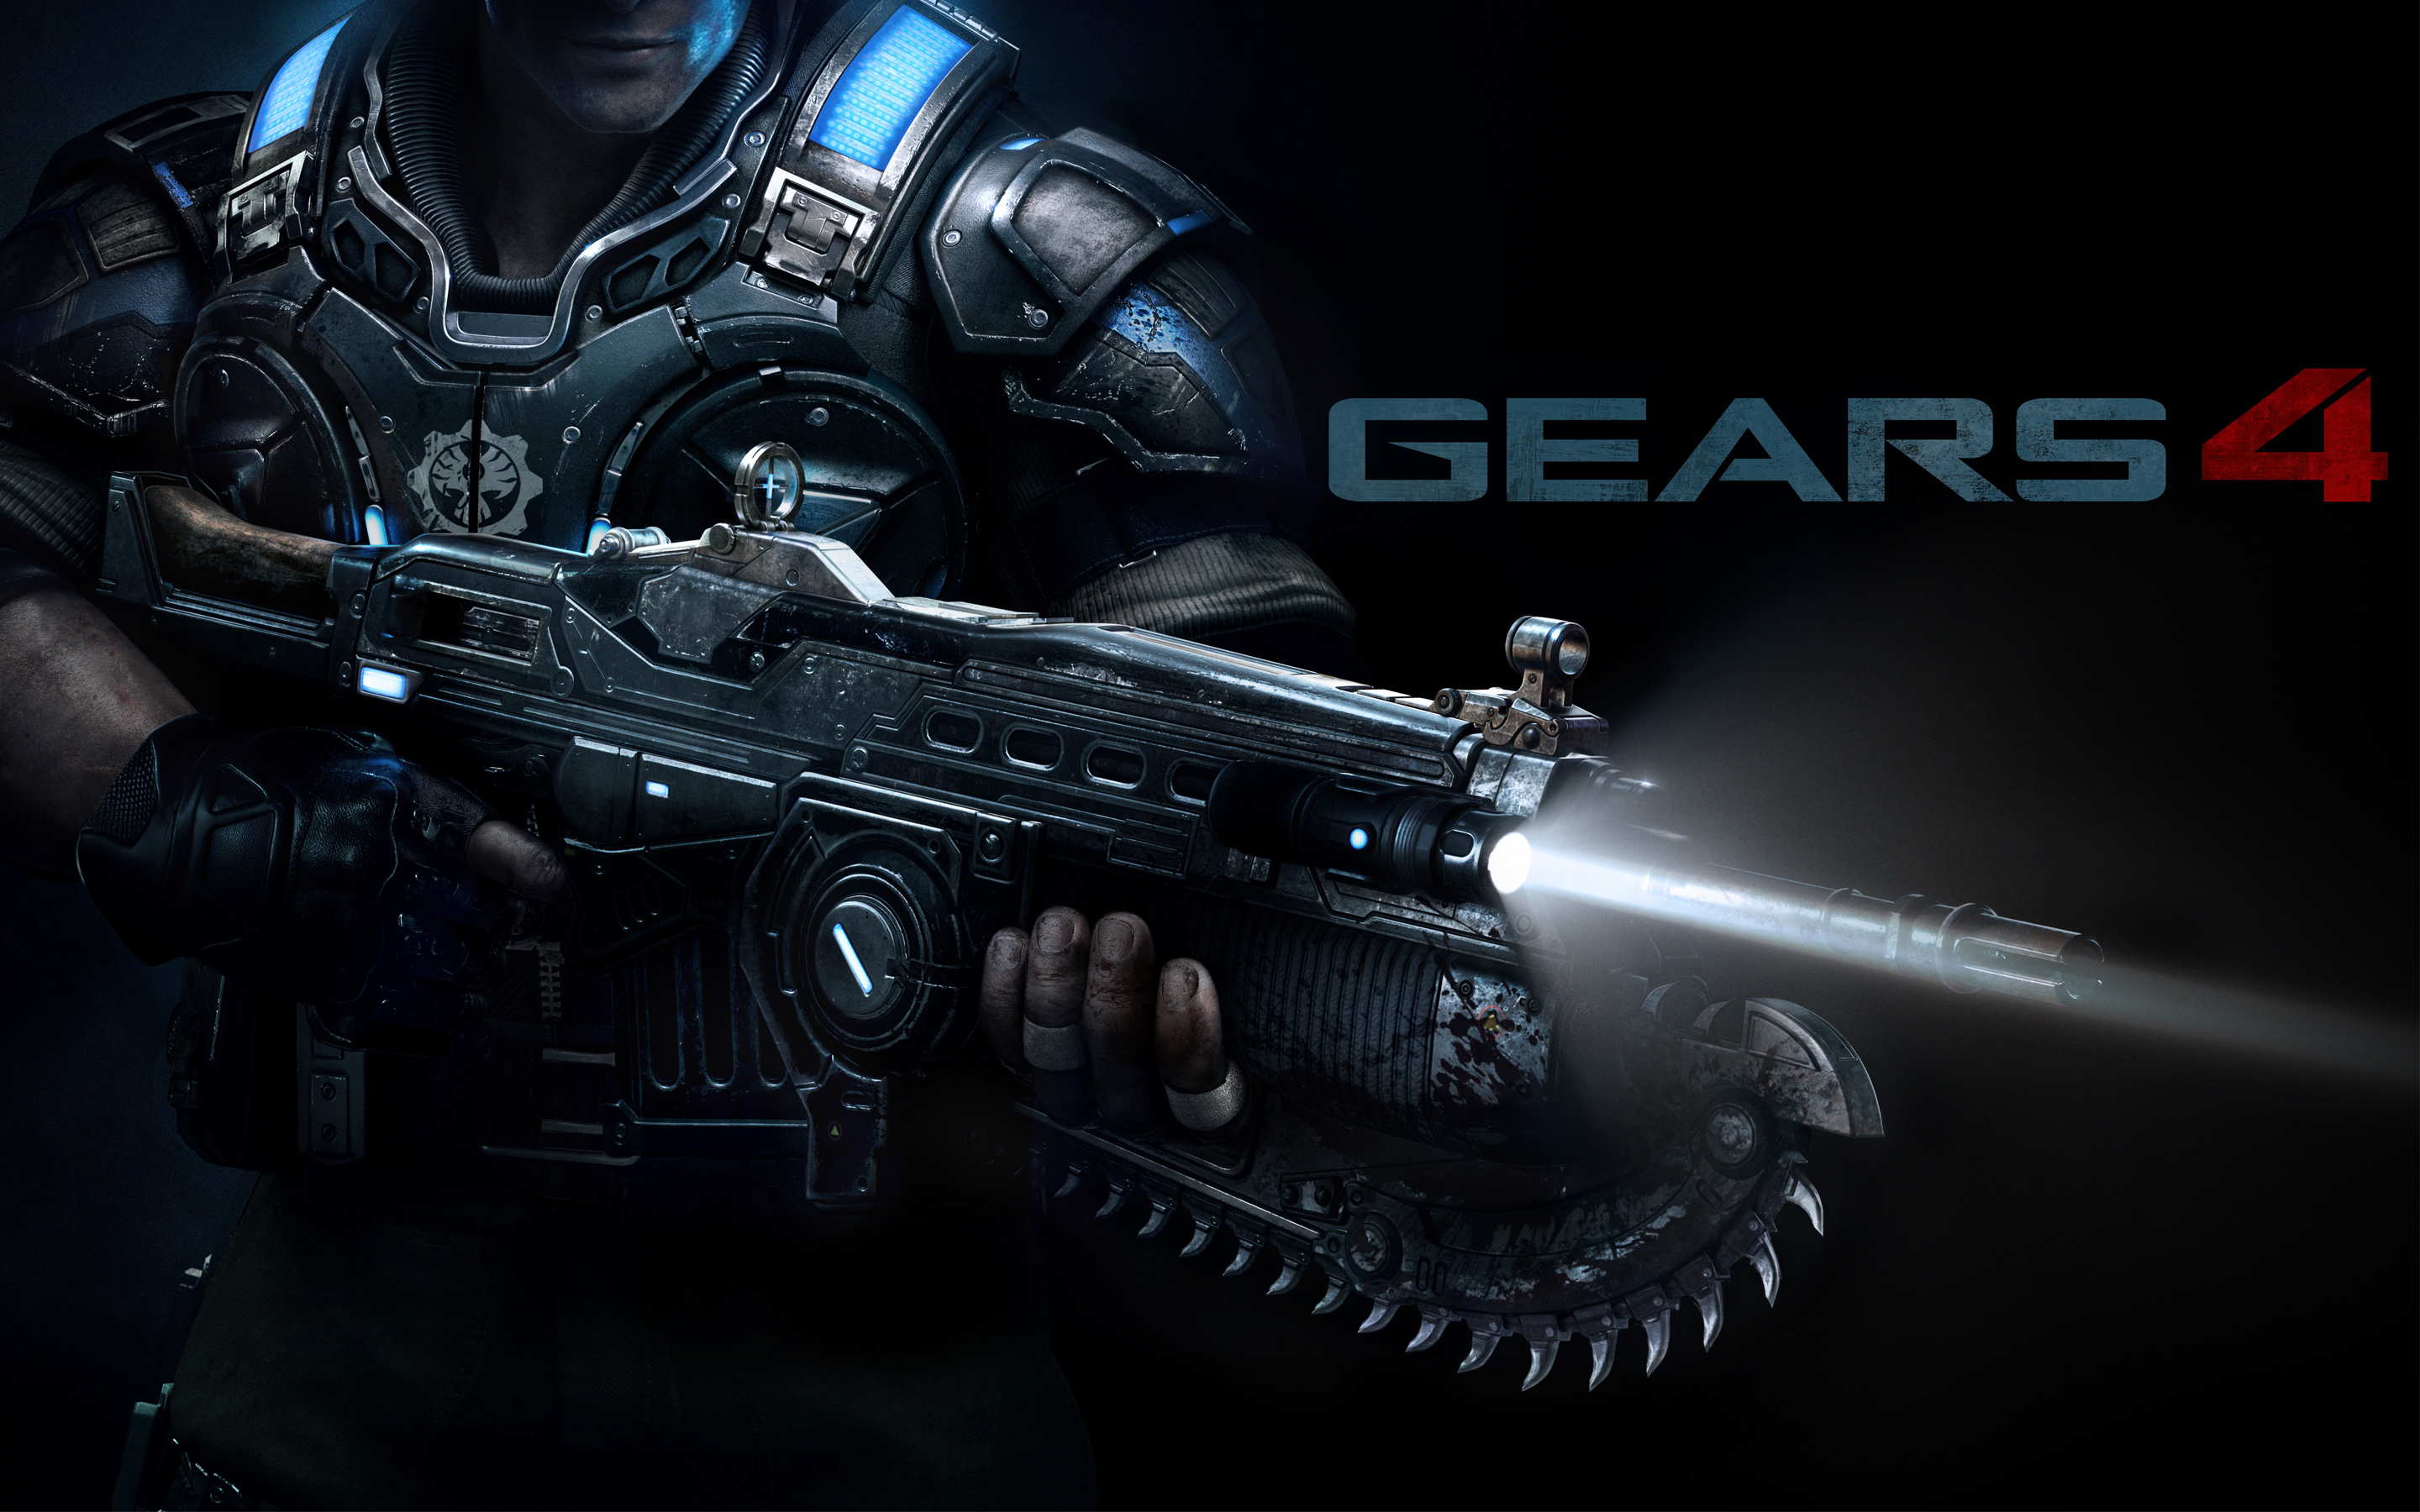 Gears Of War 4 Hd - HD Wallpaper